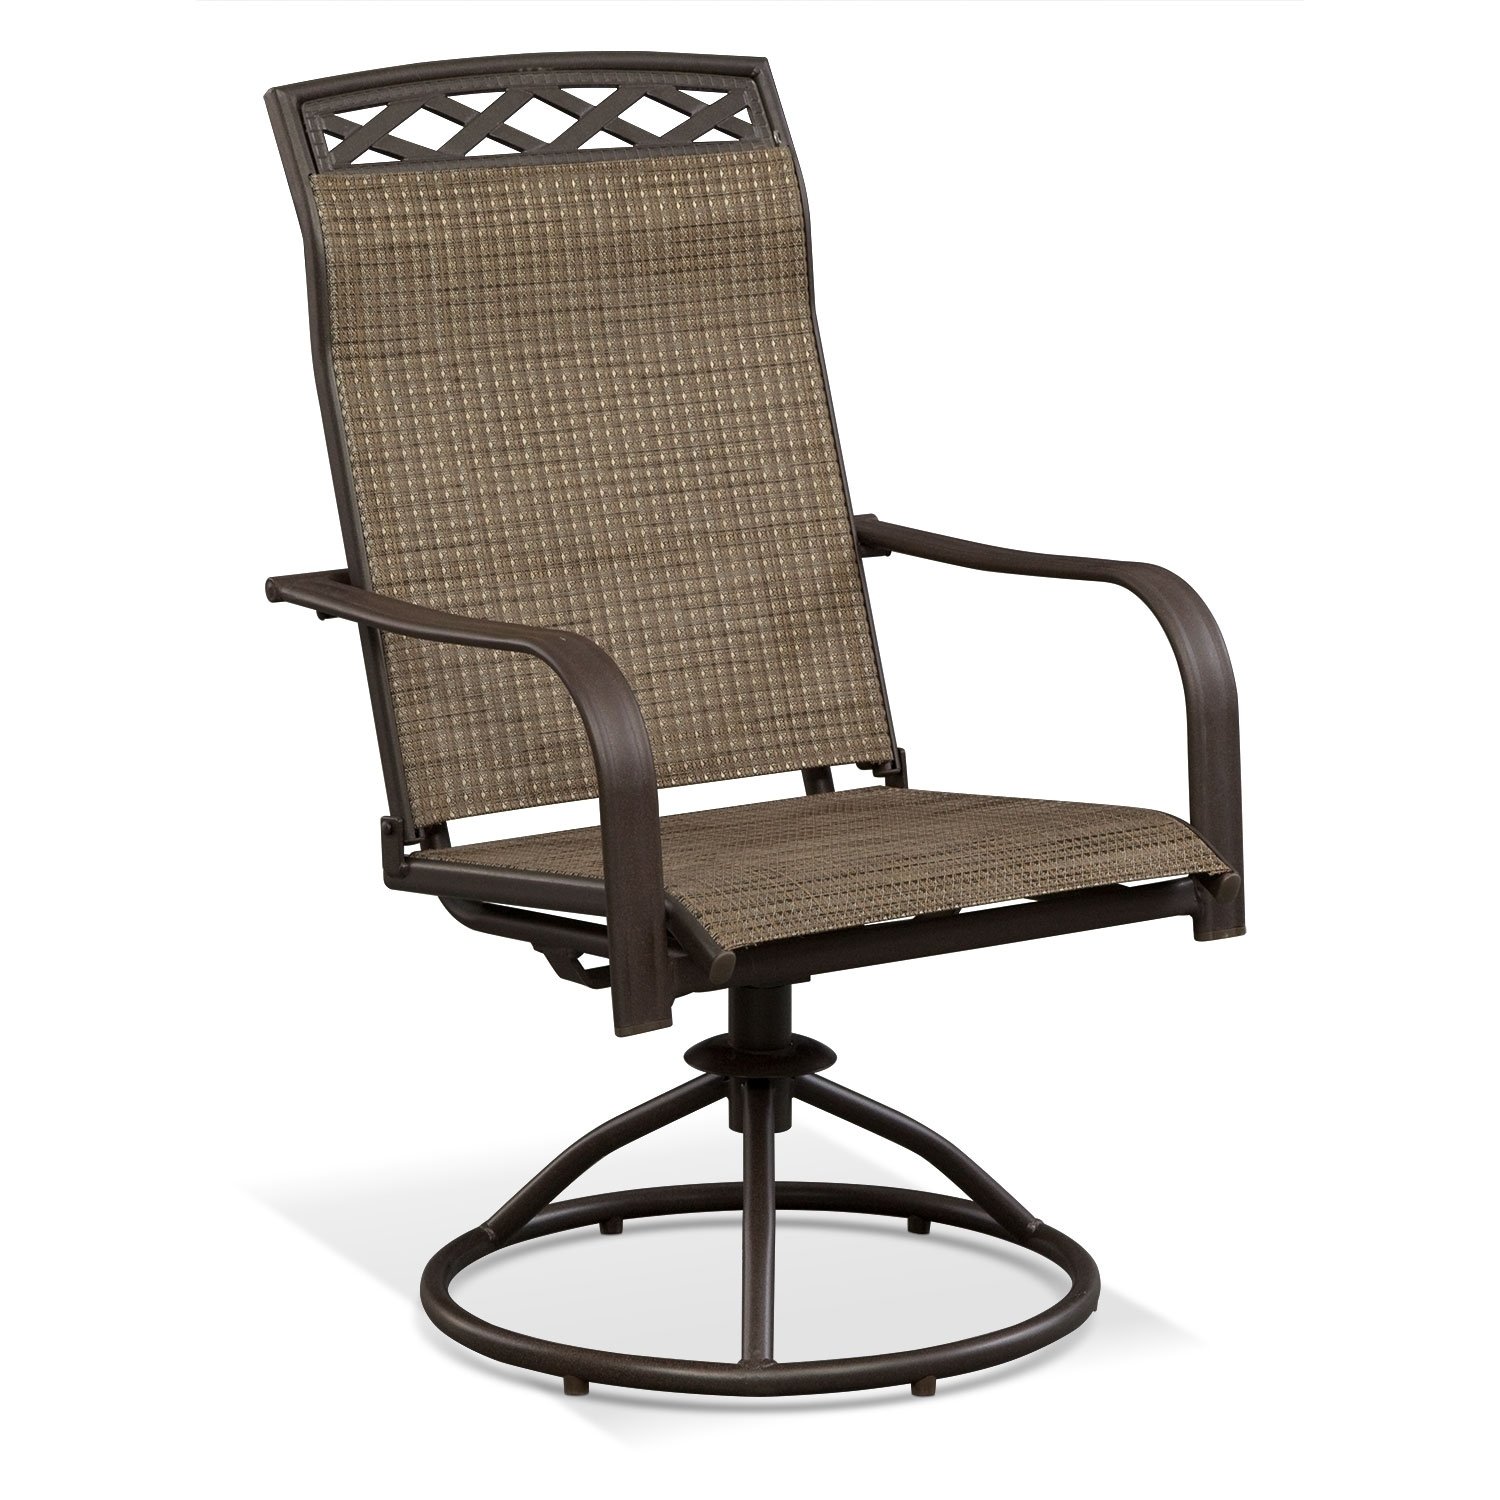 Terrace Swivel Rocker